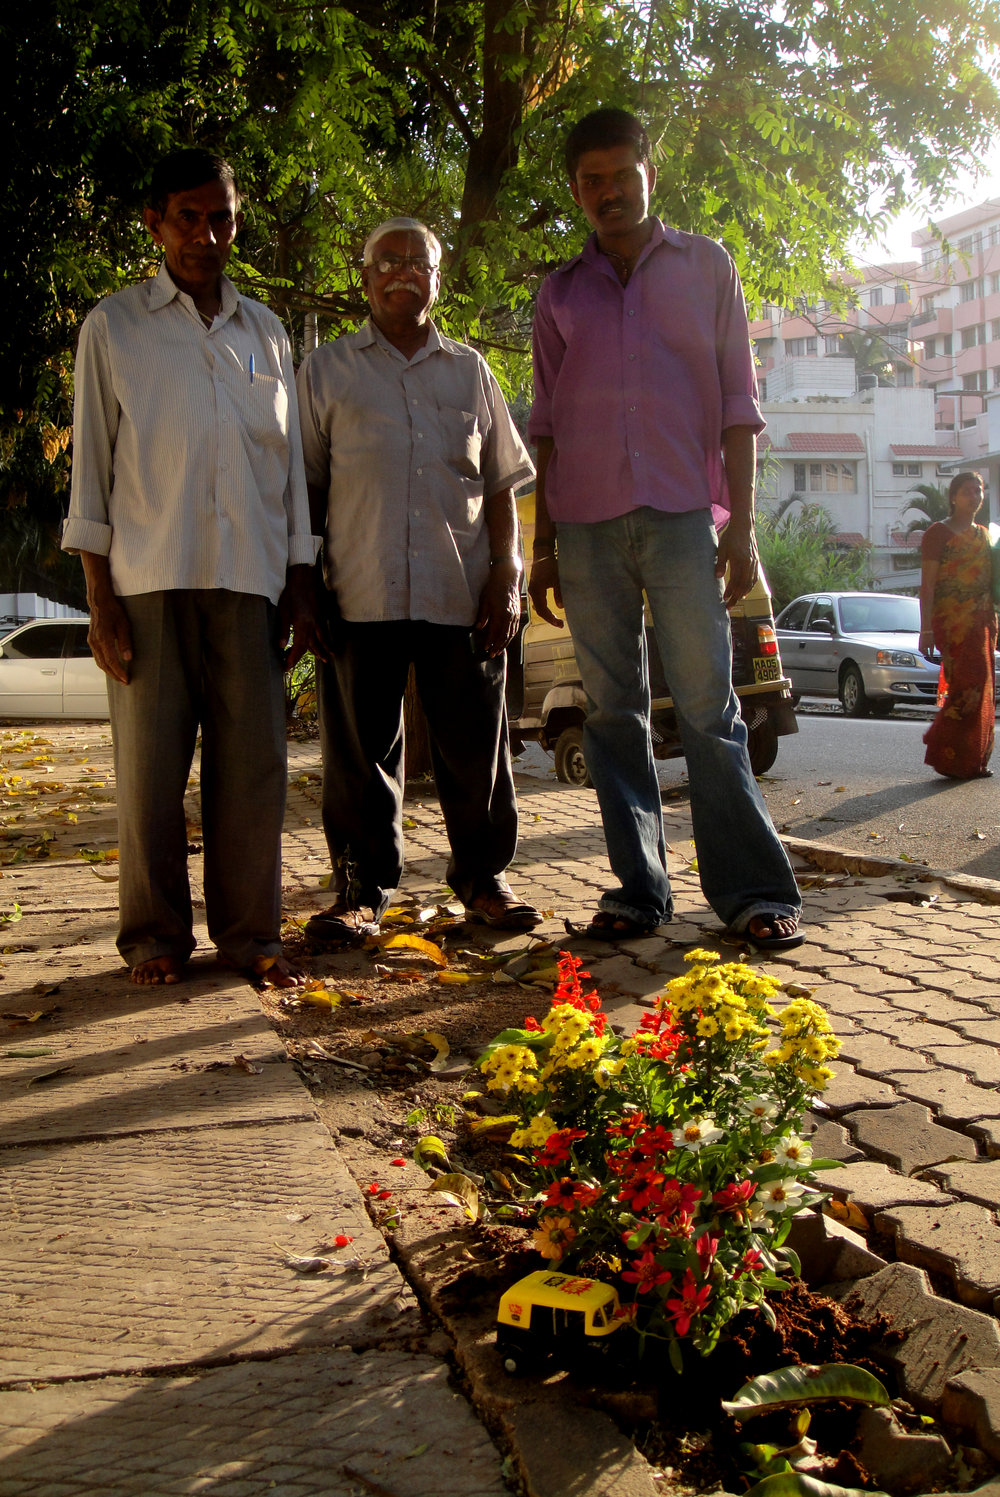 Gardening in India — The Pothole Gardener